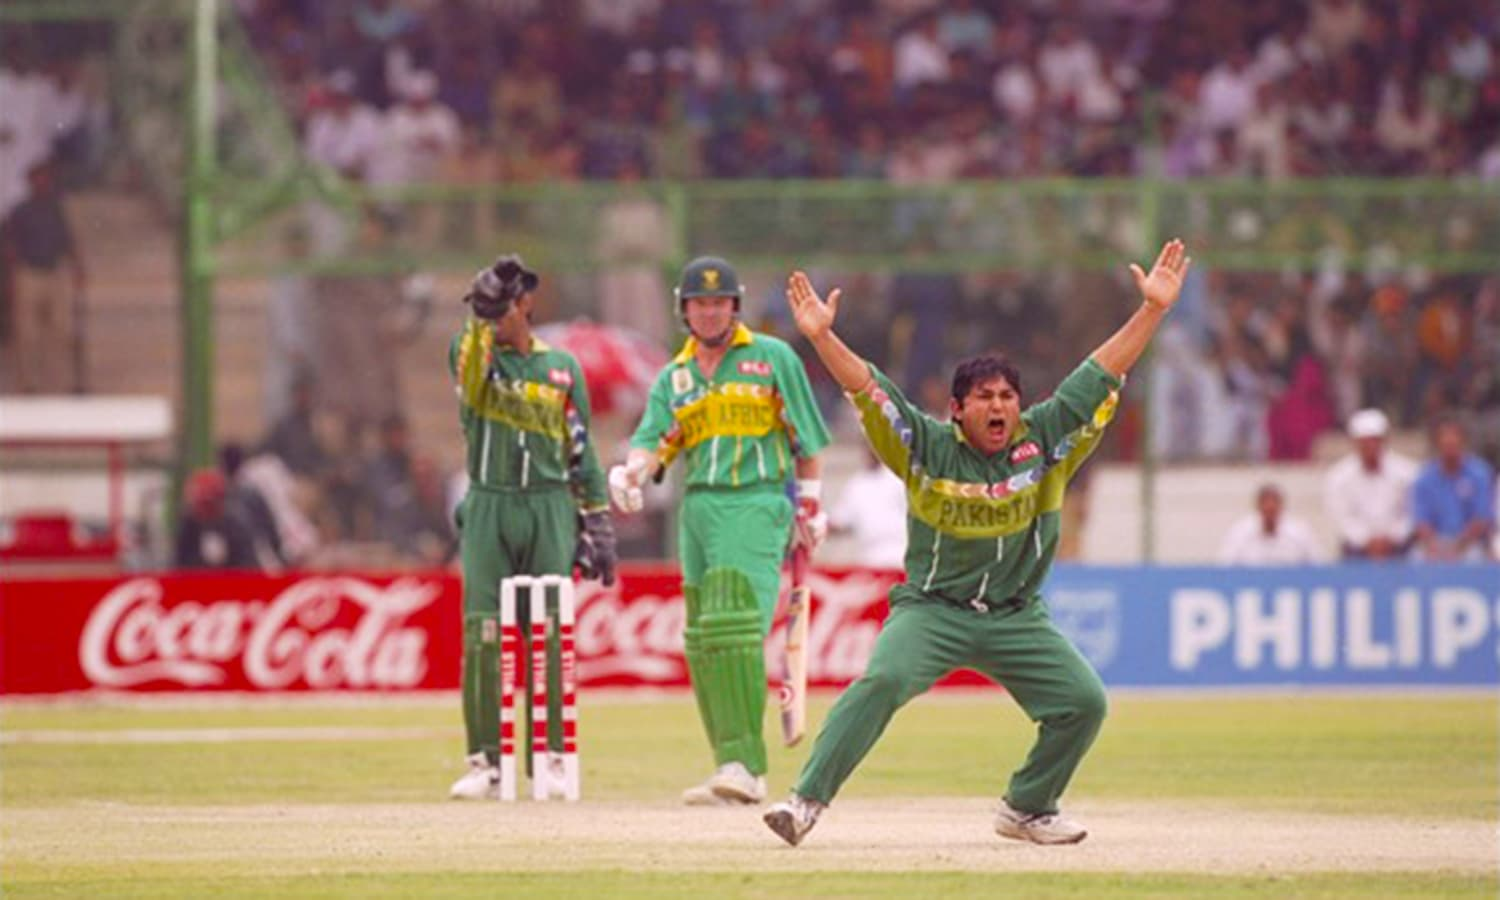 Pakistan in action against South Africa at the National Stadium during the 1996 Cricket World Cup. (Pic: Zimbio)